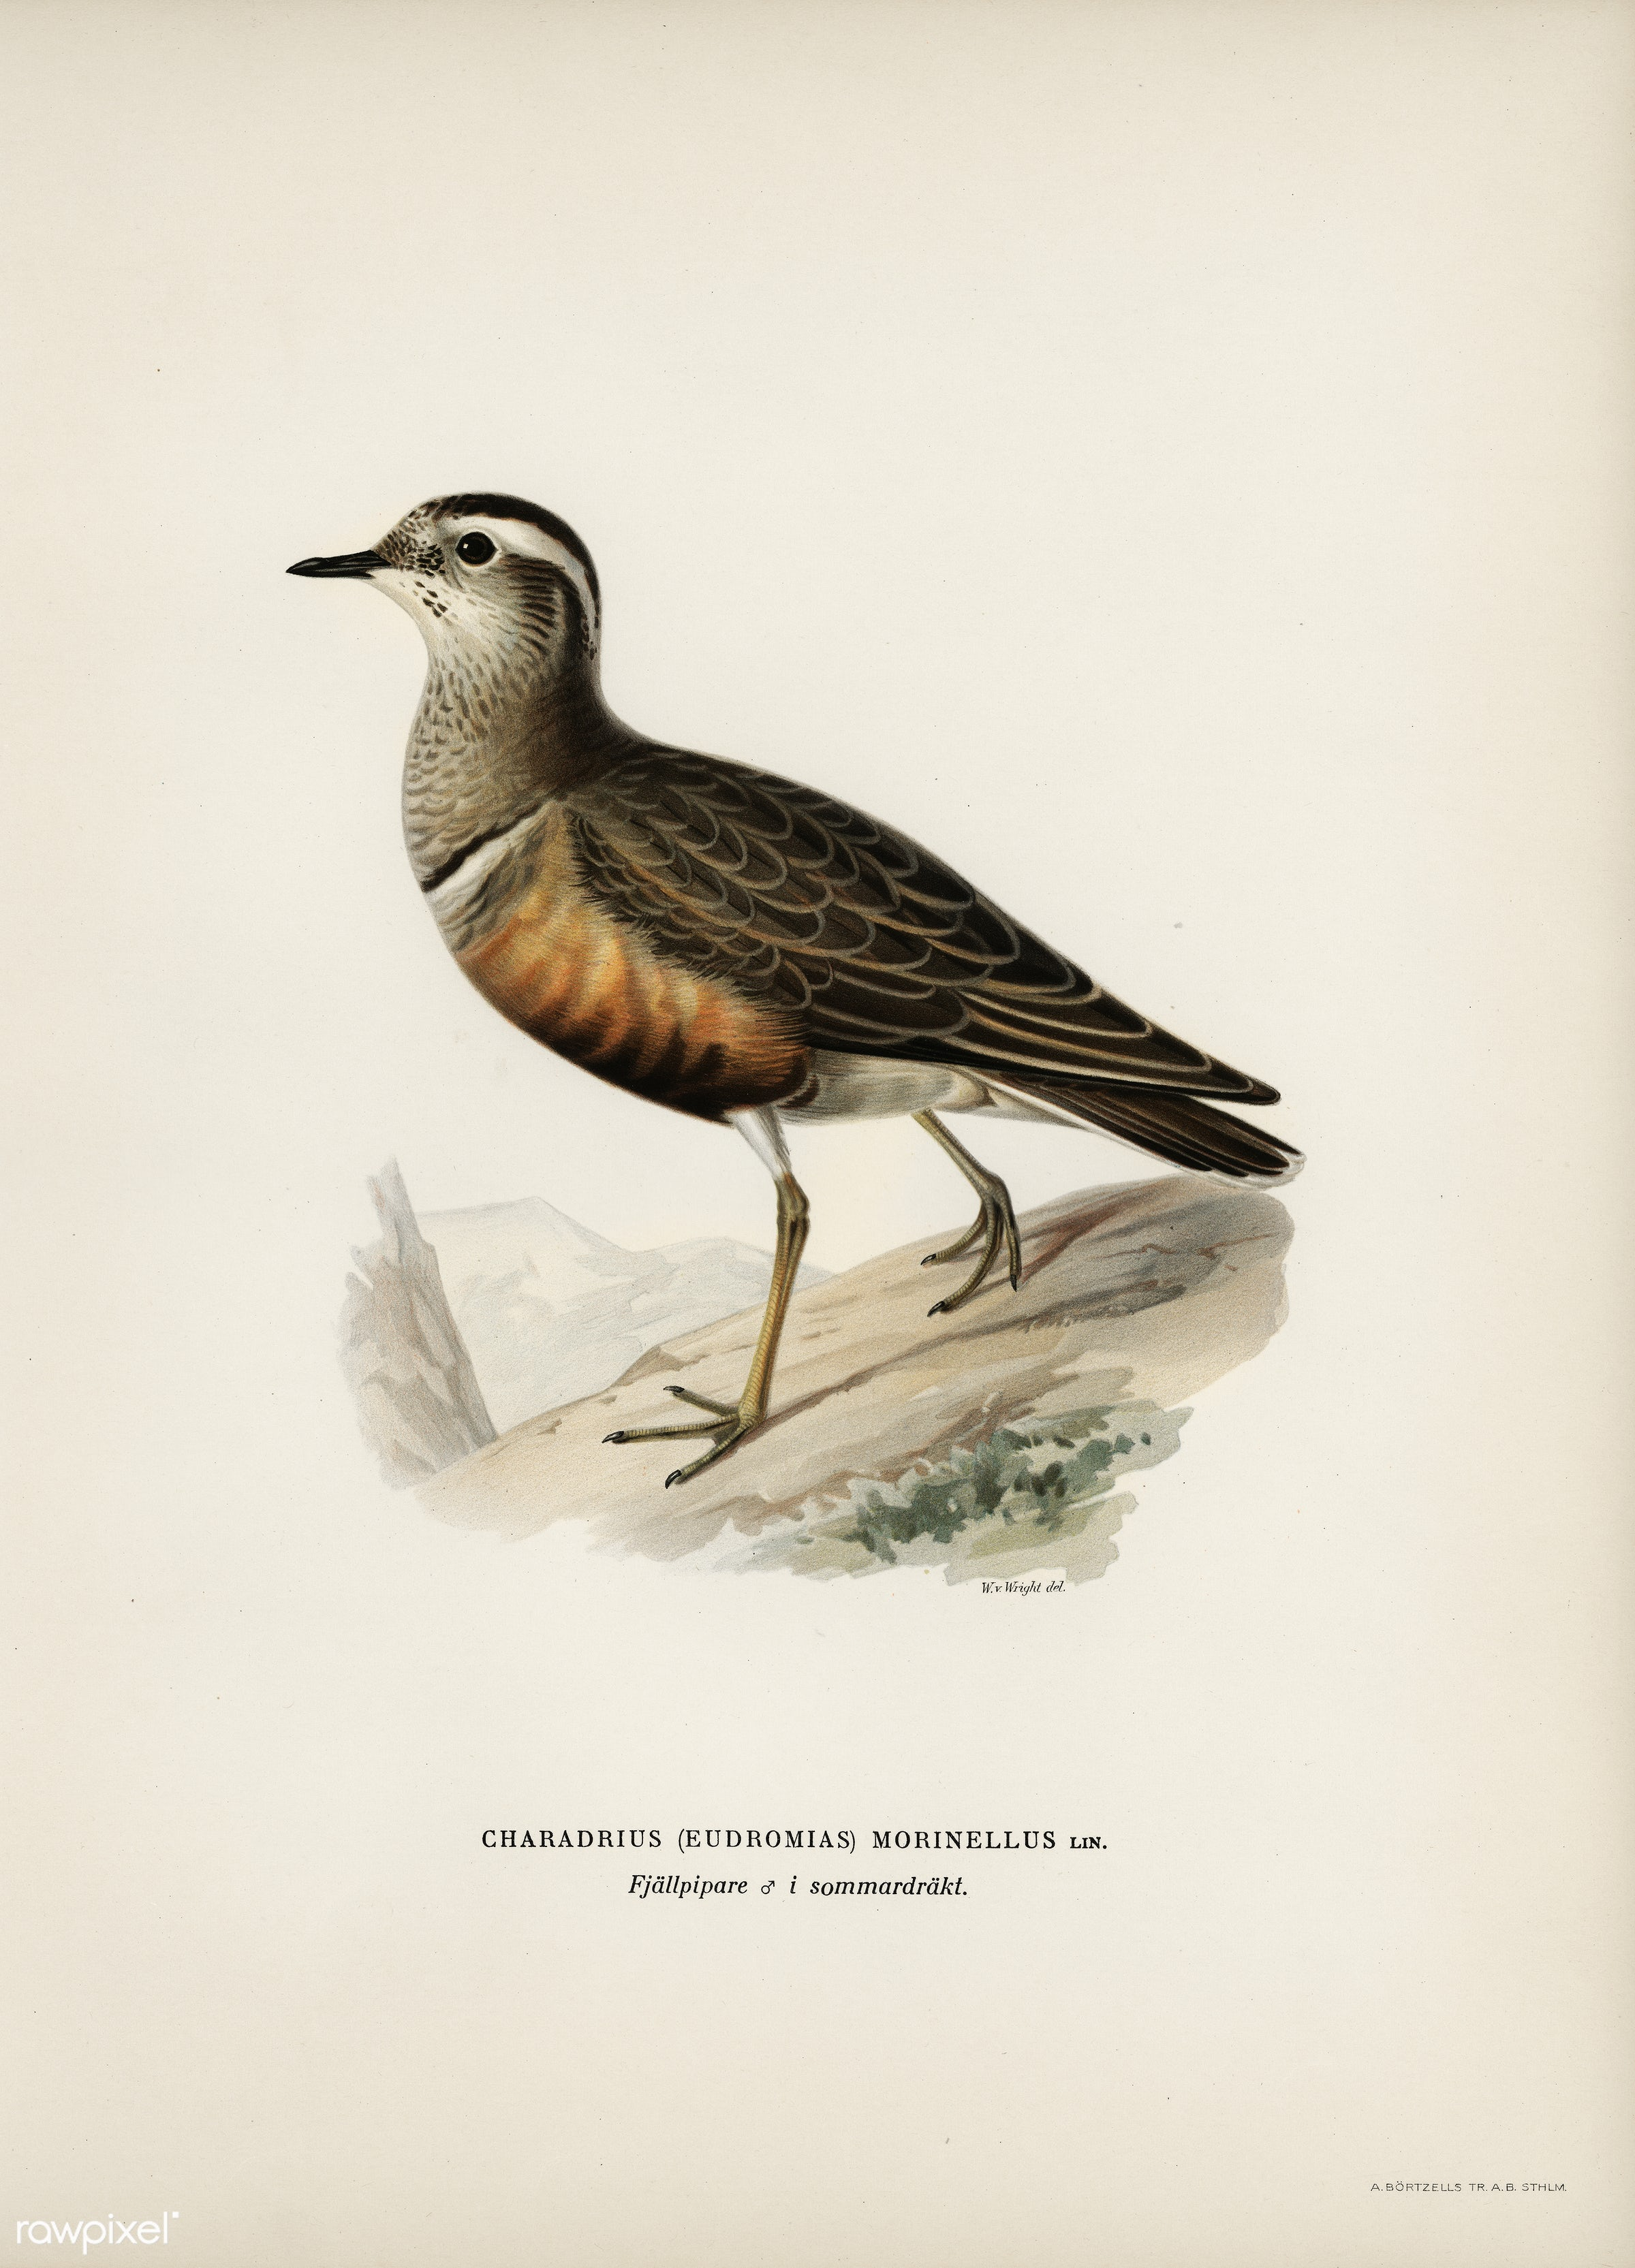 Eurasian dotterel ♂ (Charadrius (eudromias) morinellus) illustrated by the von Wright brothers. Digitally enhanced from our...